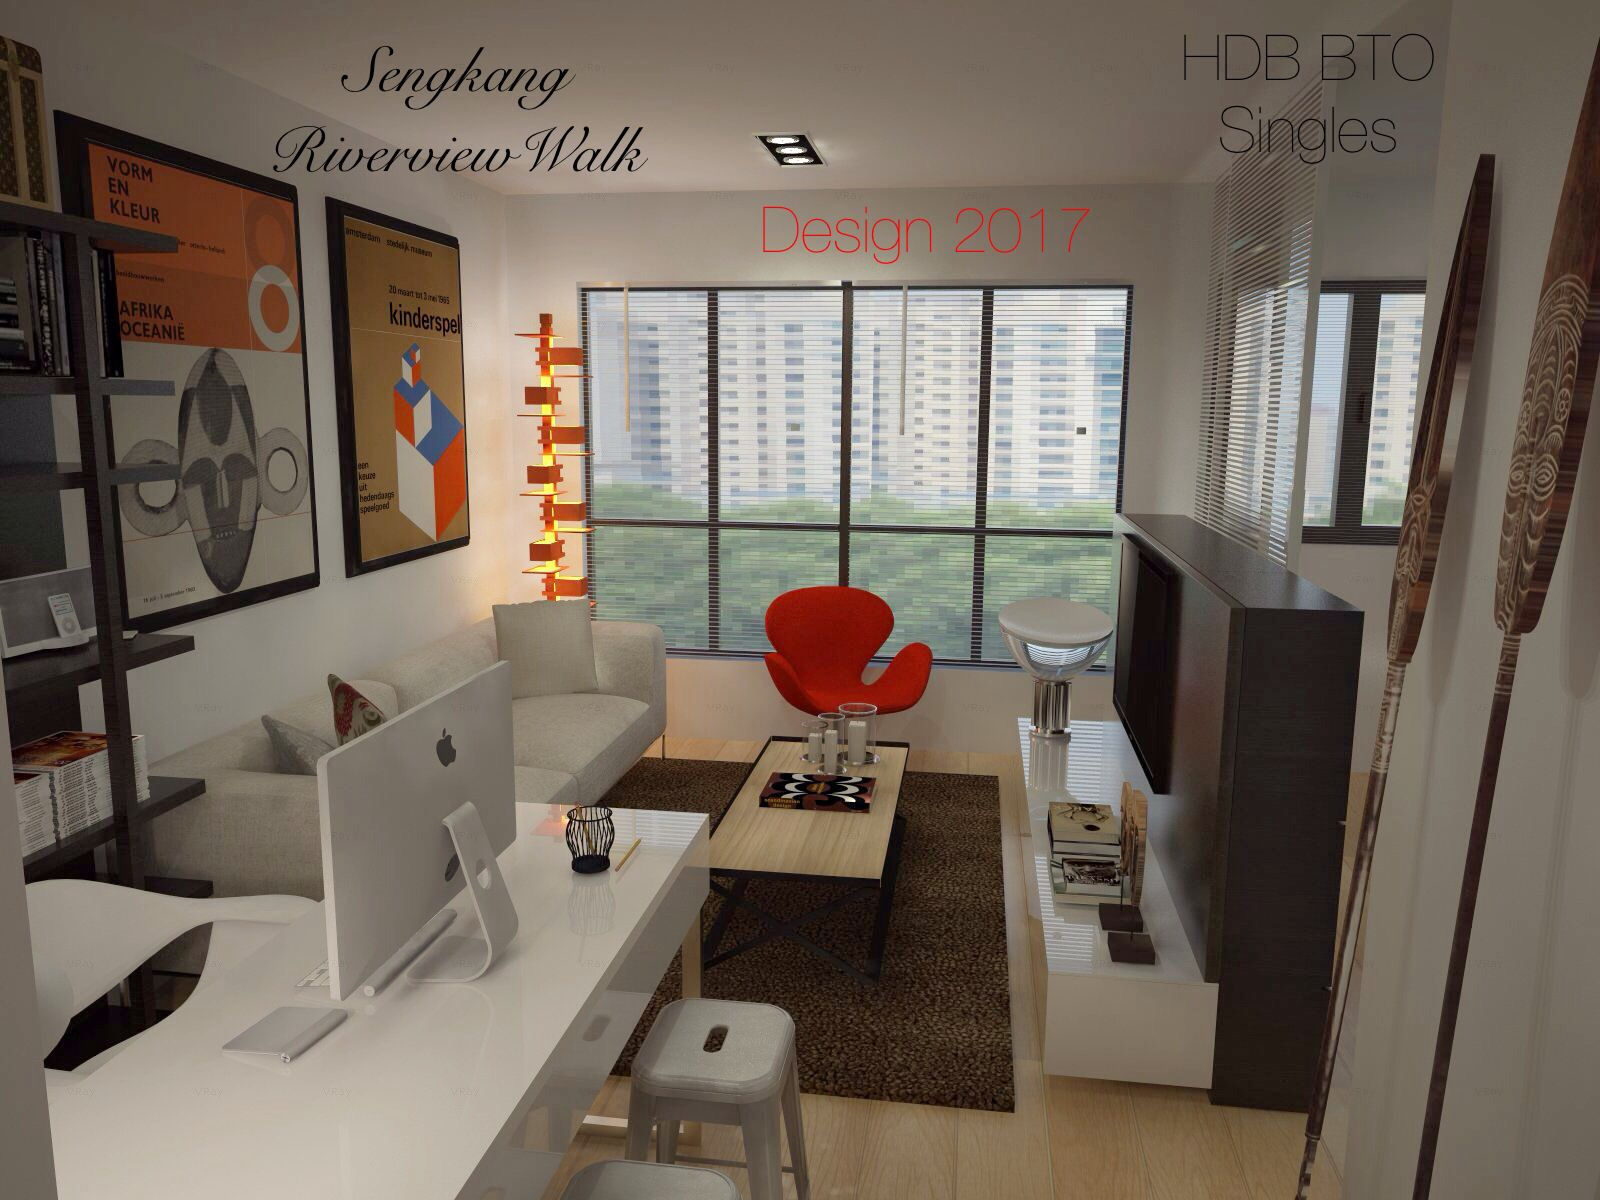 Sengkang Riverview Walk Hdb Bto For Singles 47sqm 2 Room Flat Design By The Owner Of This S